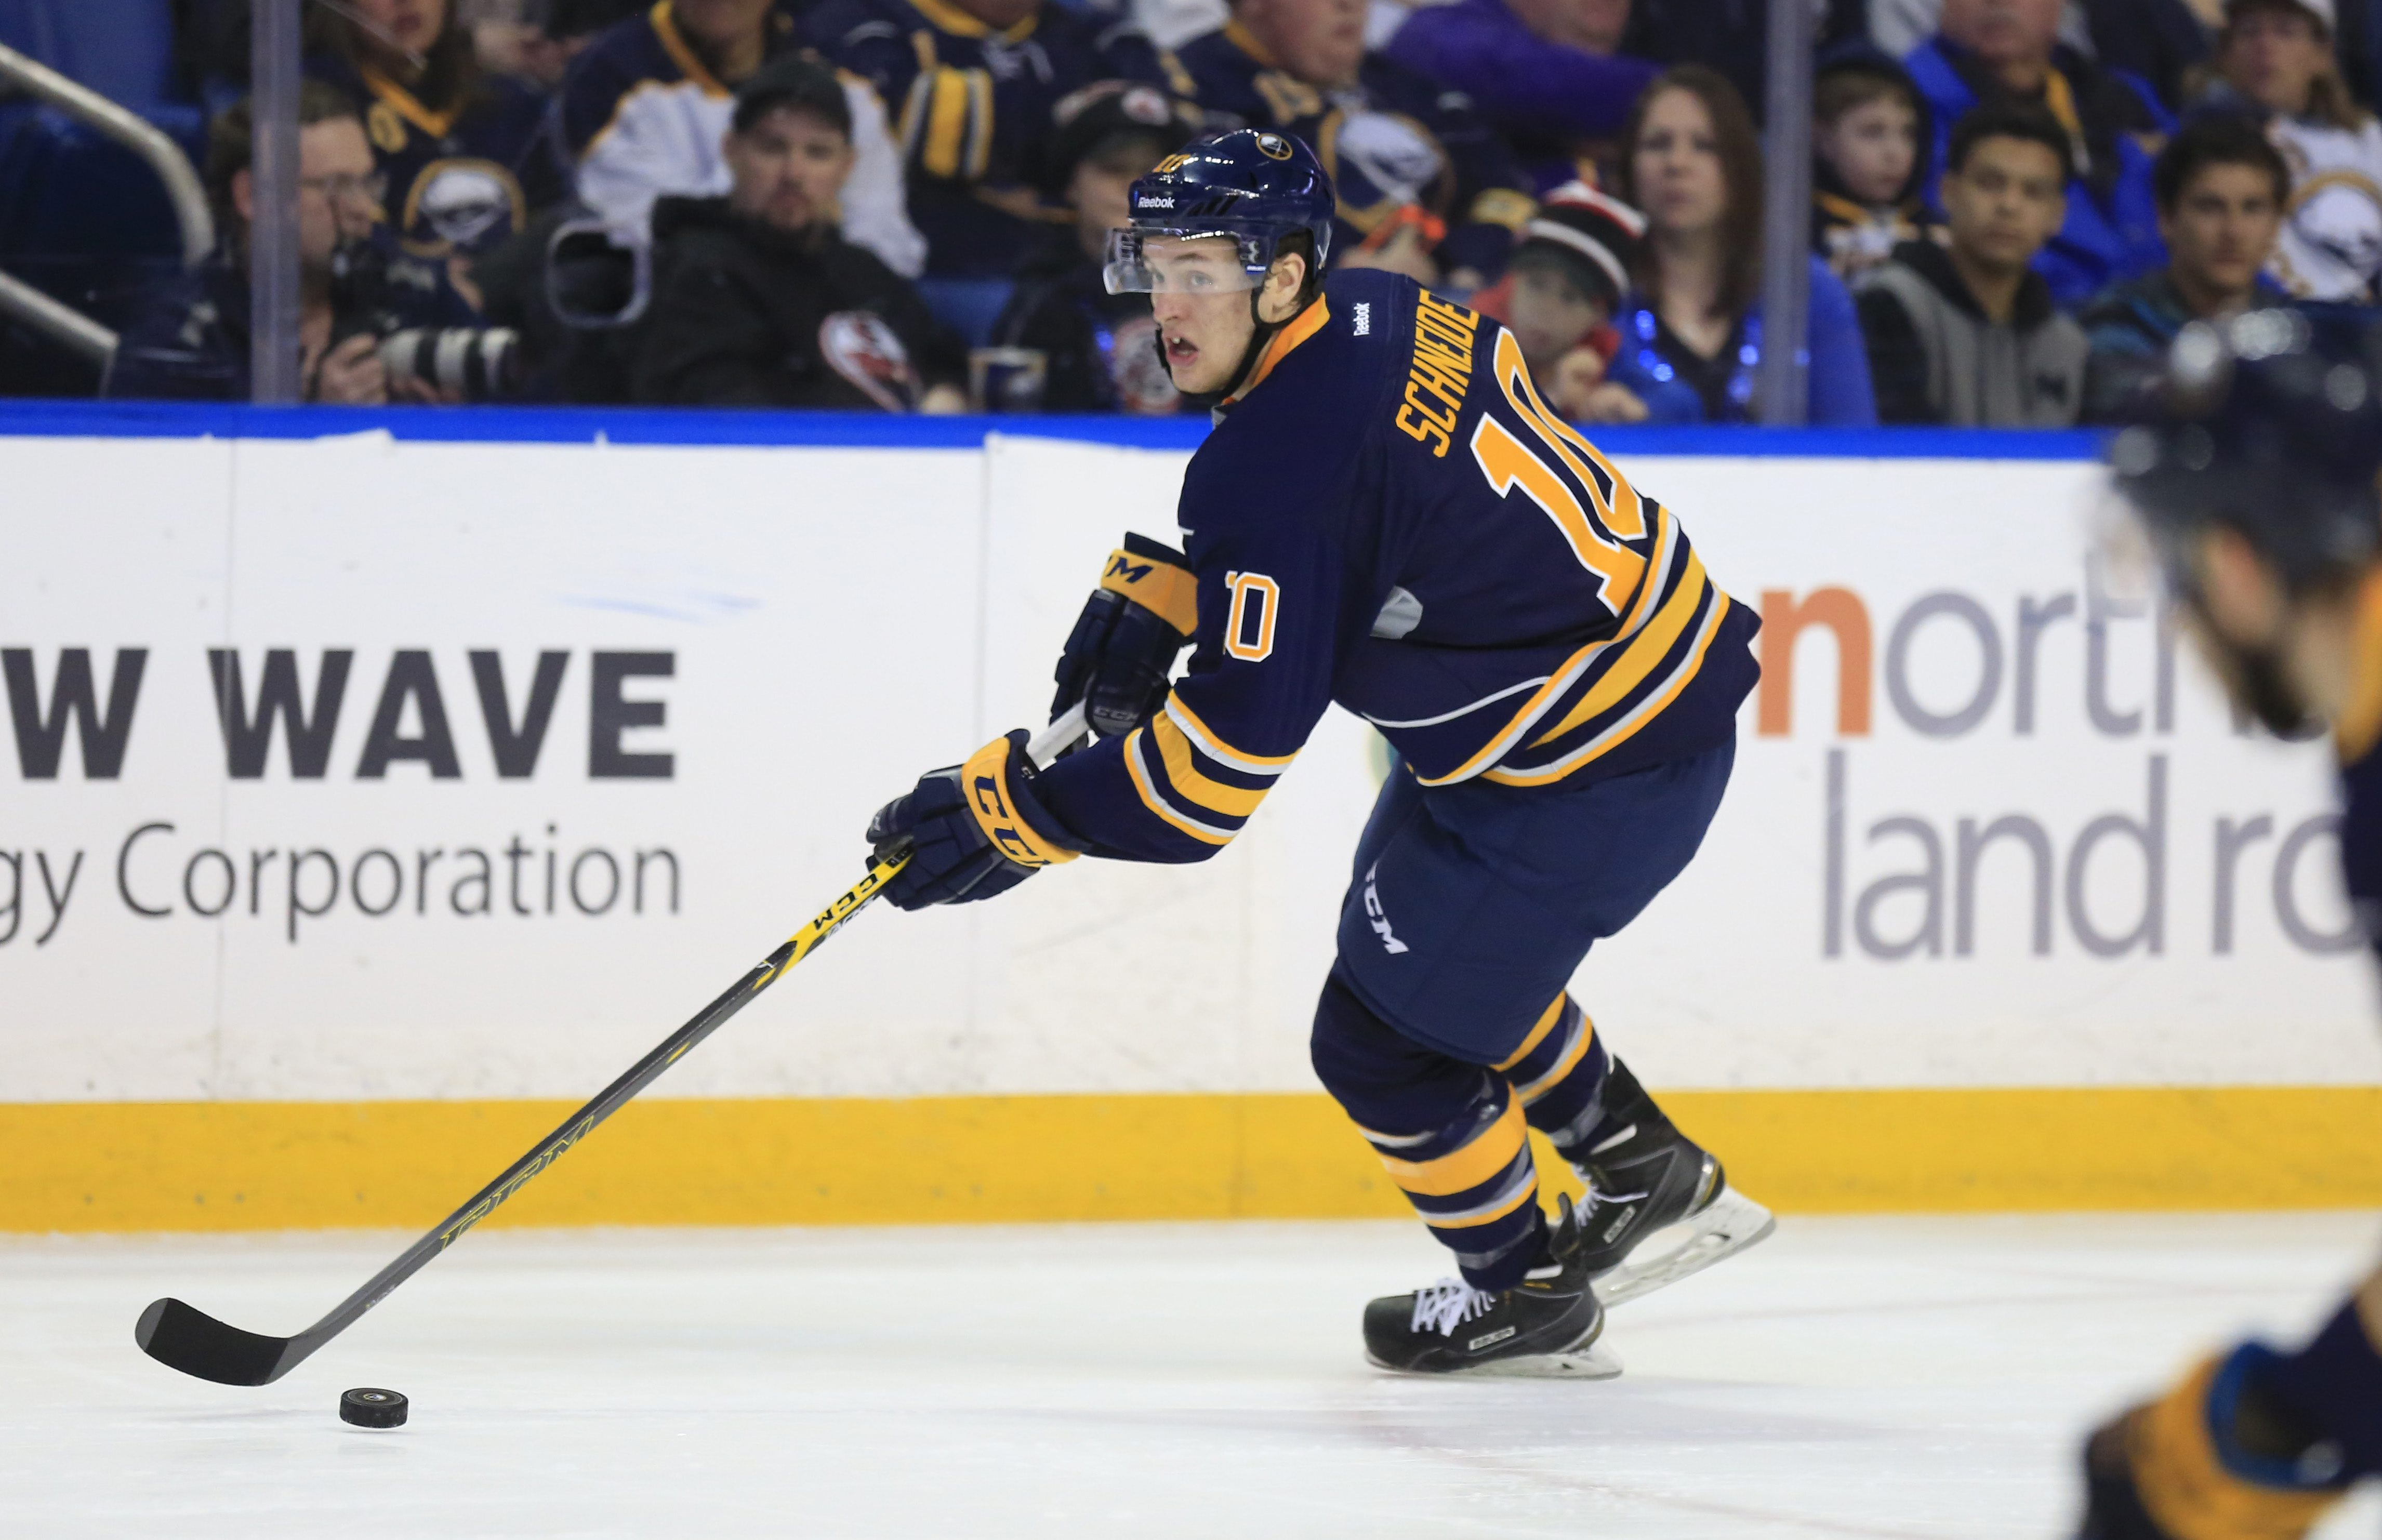 Cole Schneider skates up the ice during a Sabres game against Columbus last April. (Harry Scull Jr./Buffalo News)